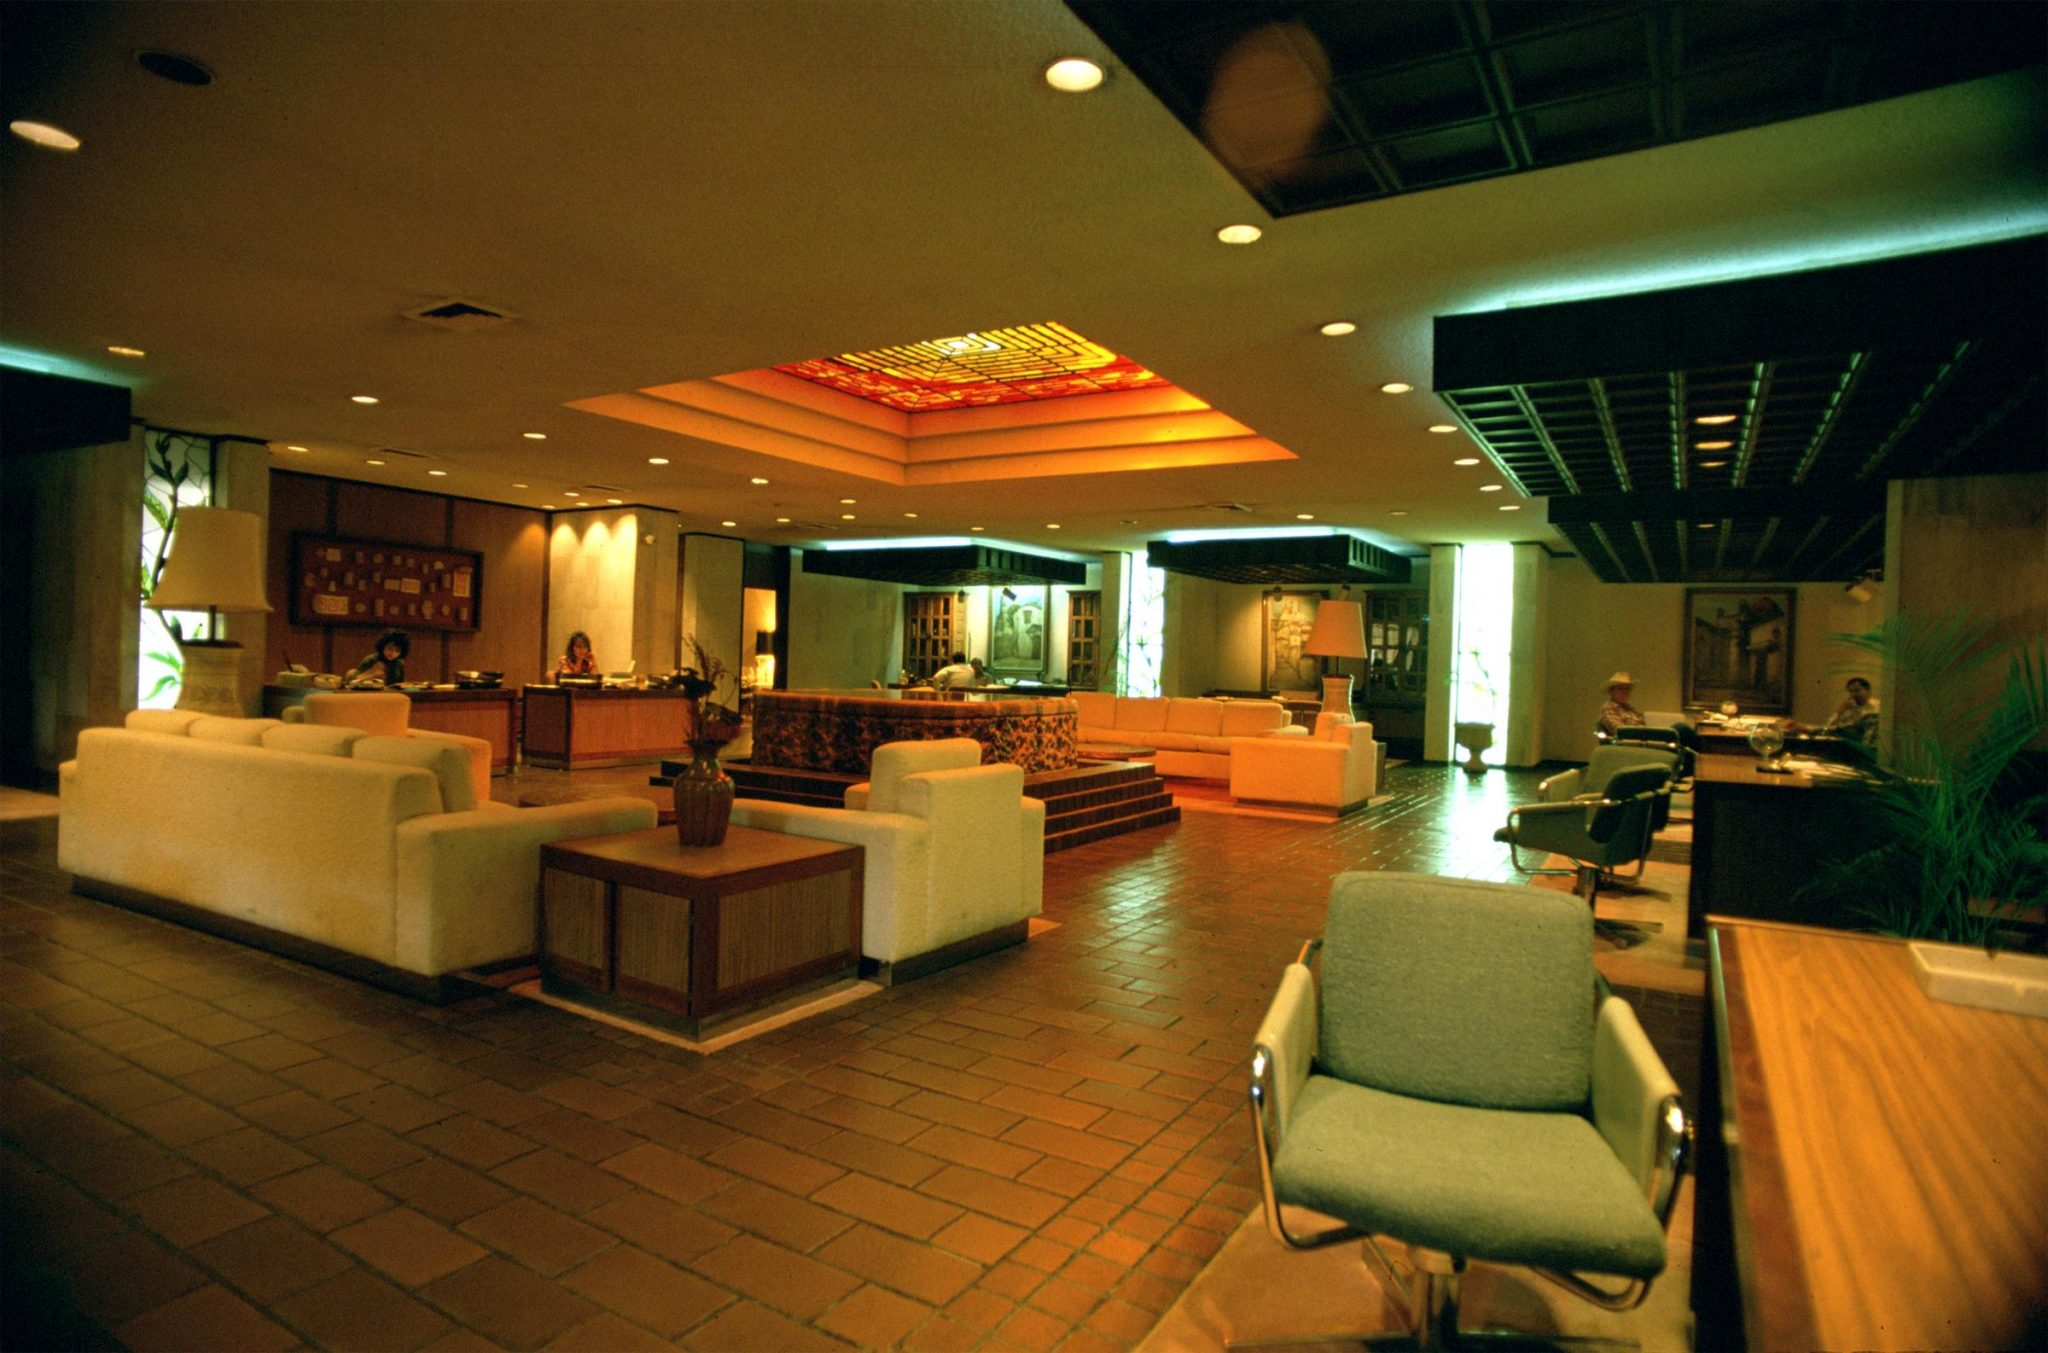 Interior of UNIBANCO building located in Chihuahua